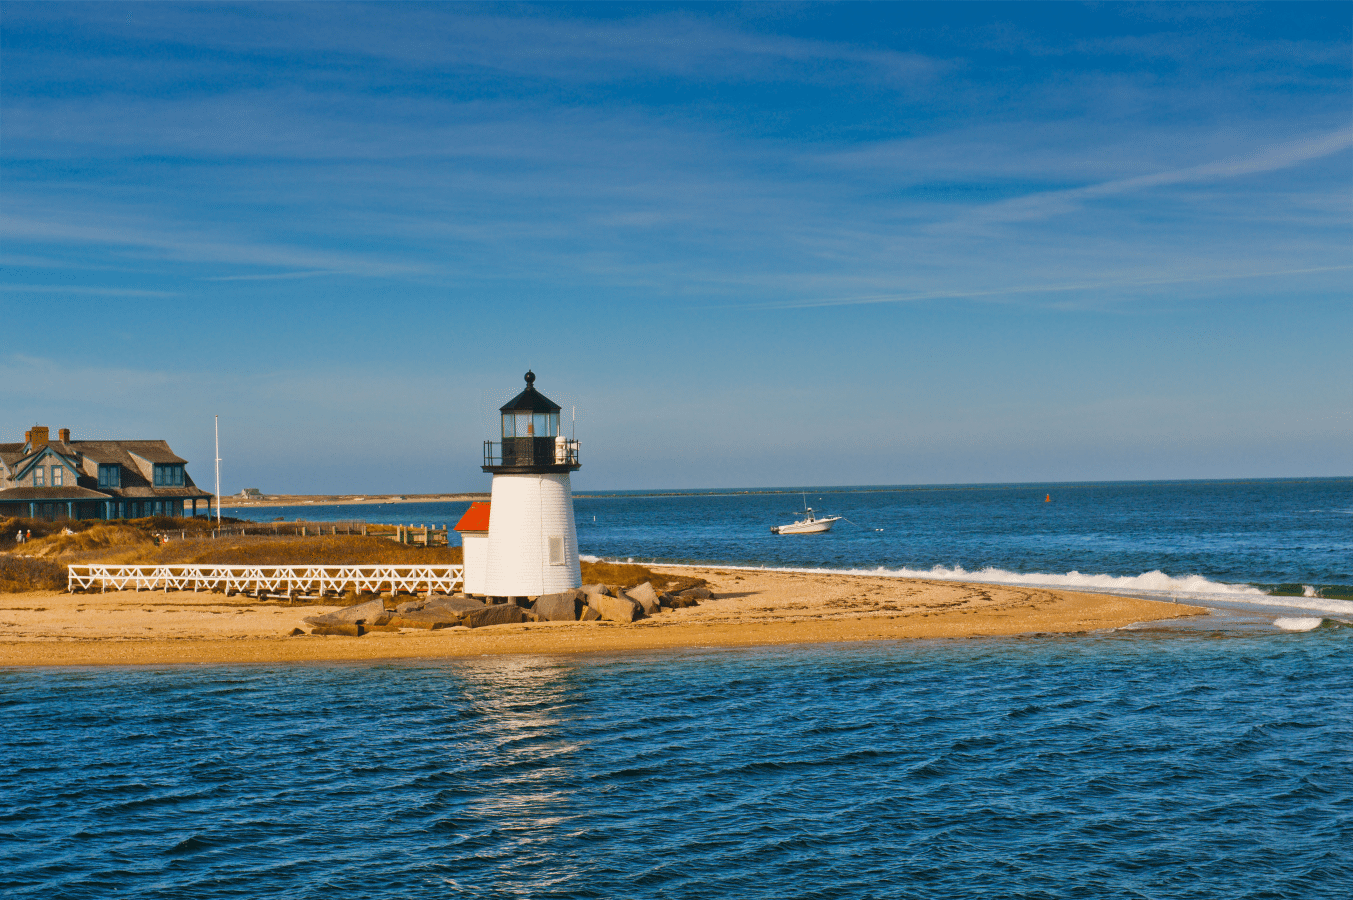 REGISTER FOR NANTUCKET  - We can't wait to go on this adventure with you!